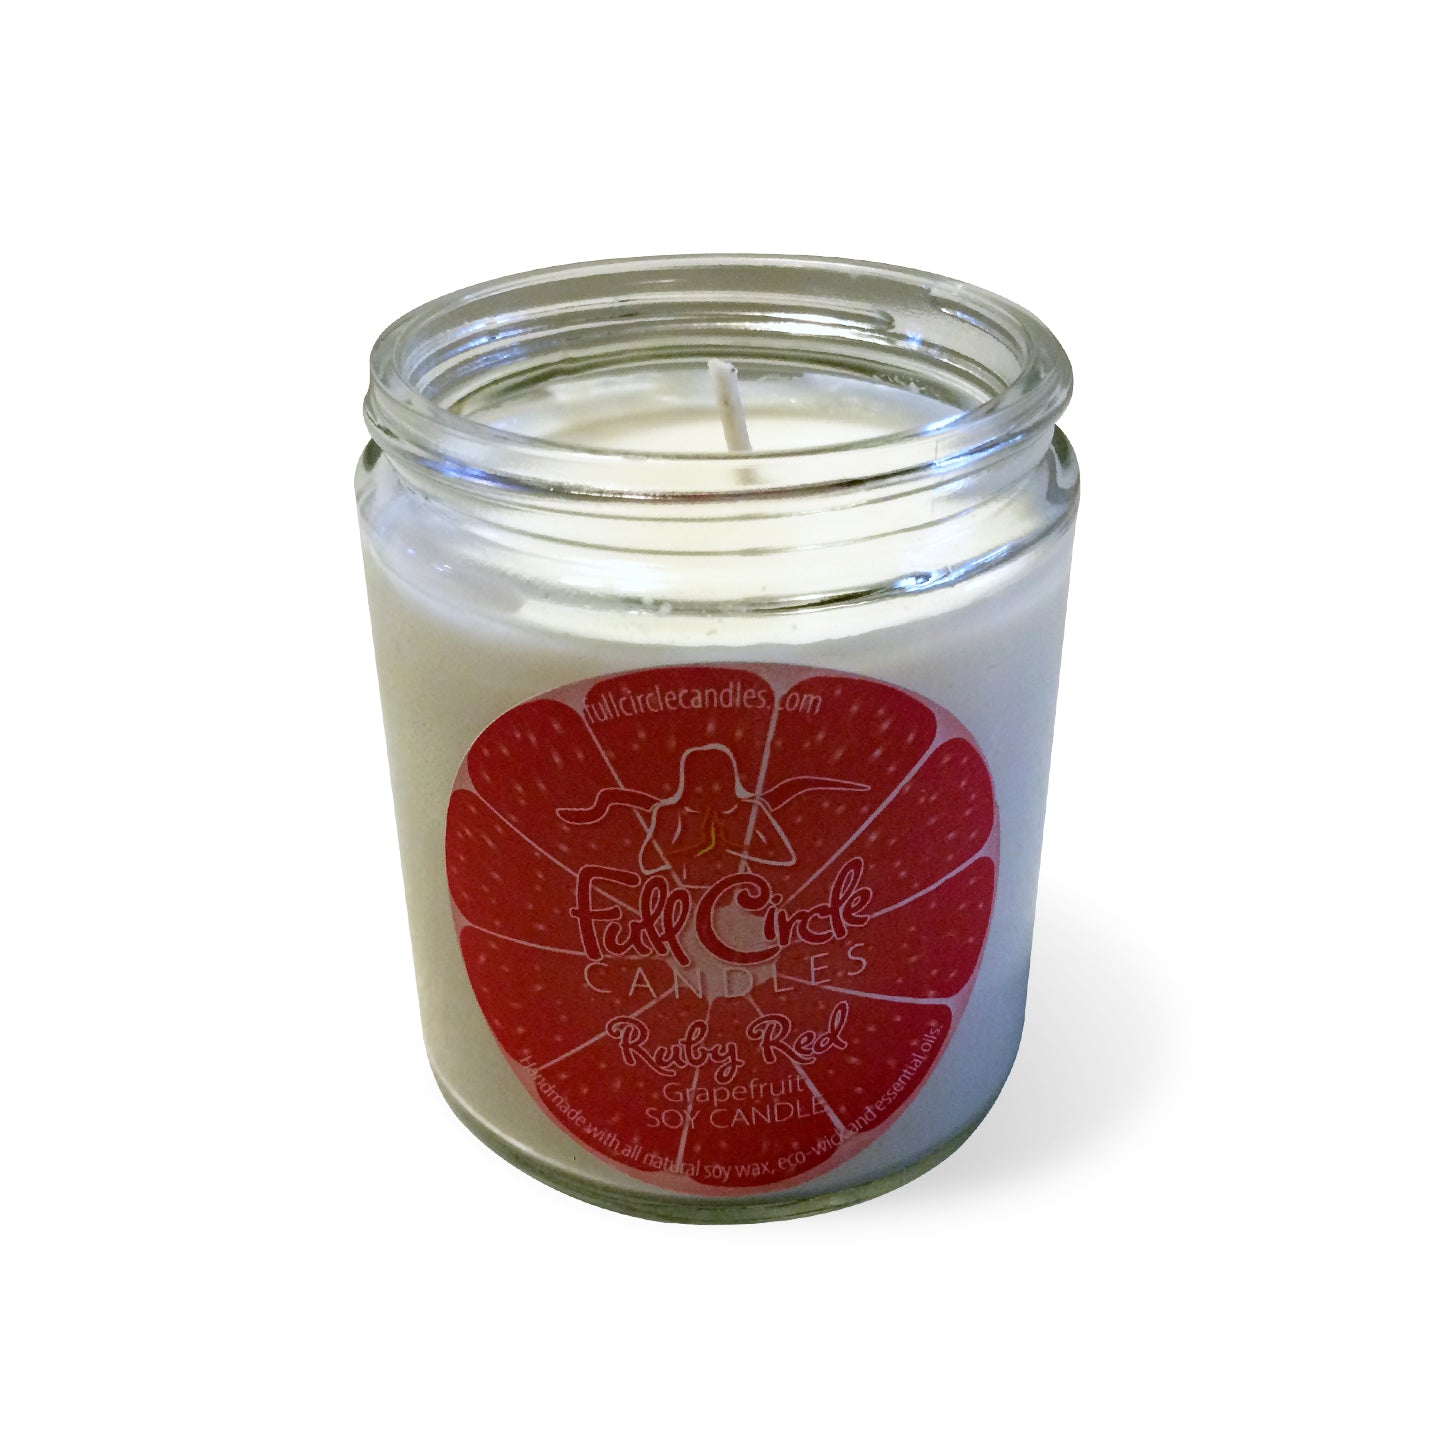 Grapefruit Soy Candle | Ruby Red | Full Circle Candles